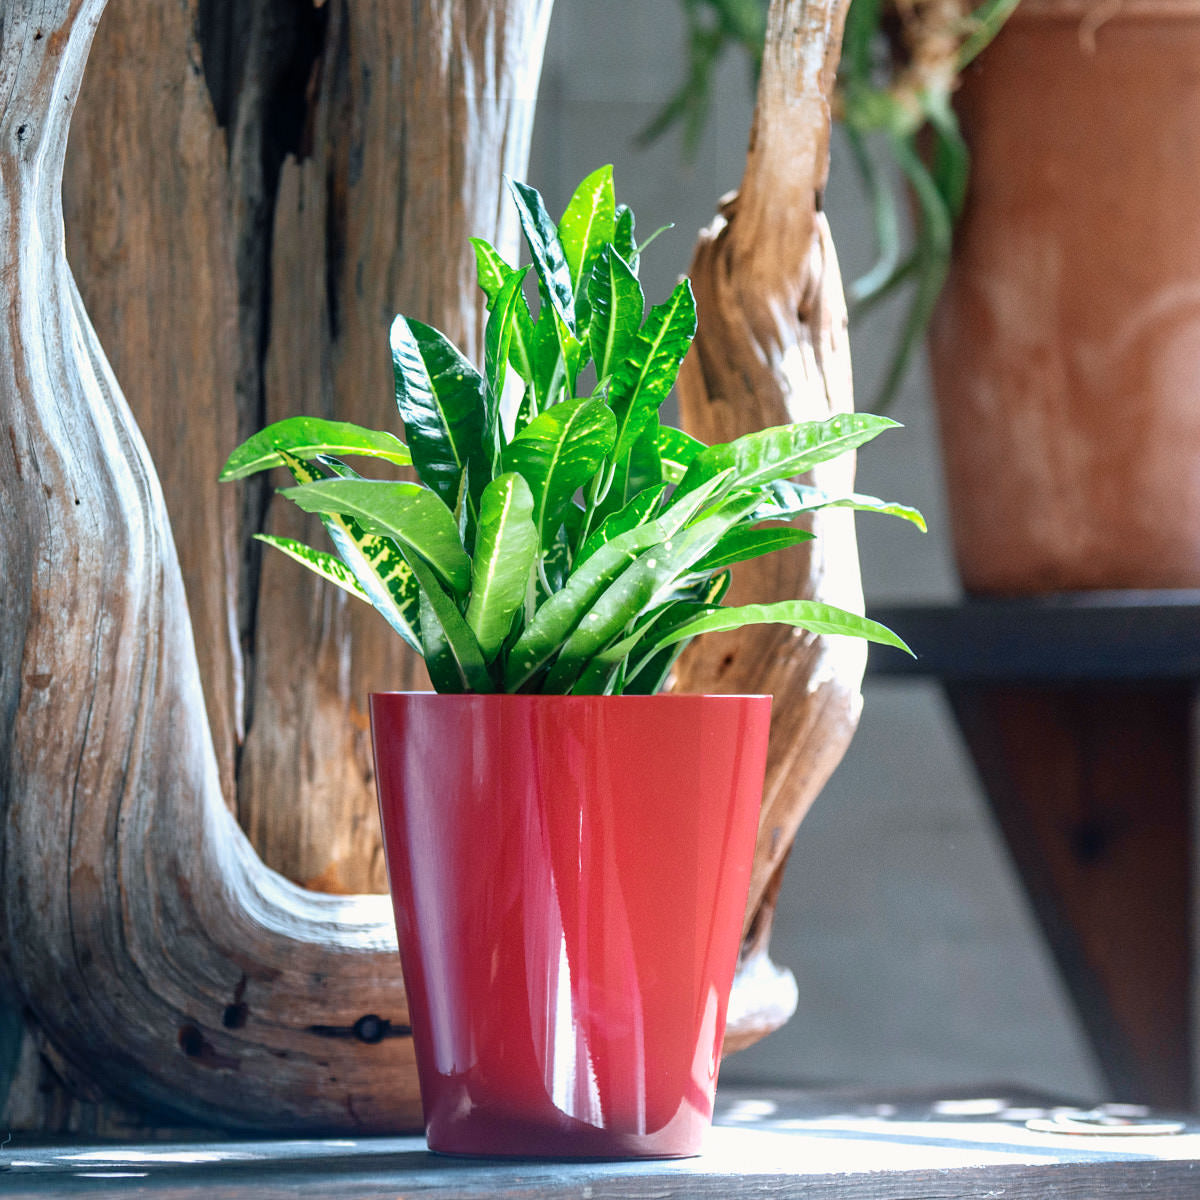 Yellow Croton plant potted in Lechuza Lechuza Deltini red planter - Shop Online - My City Plants